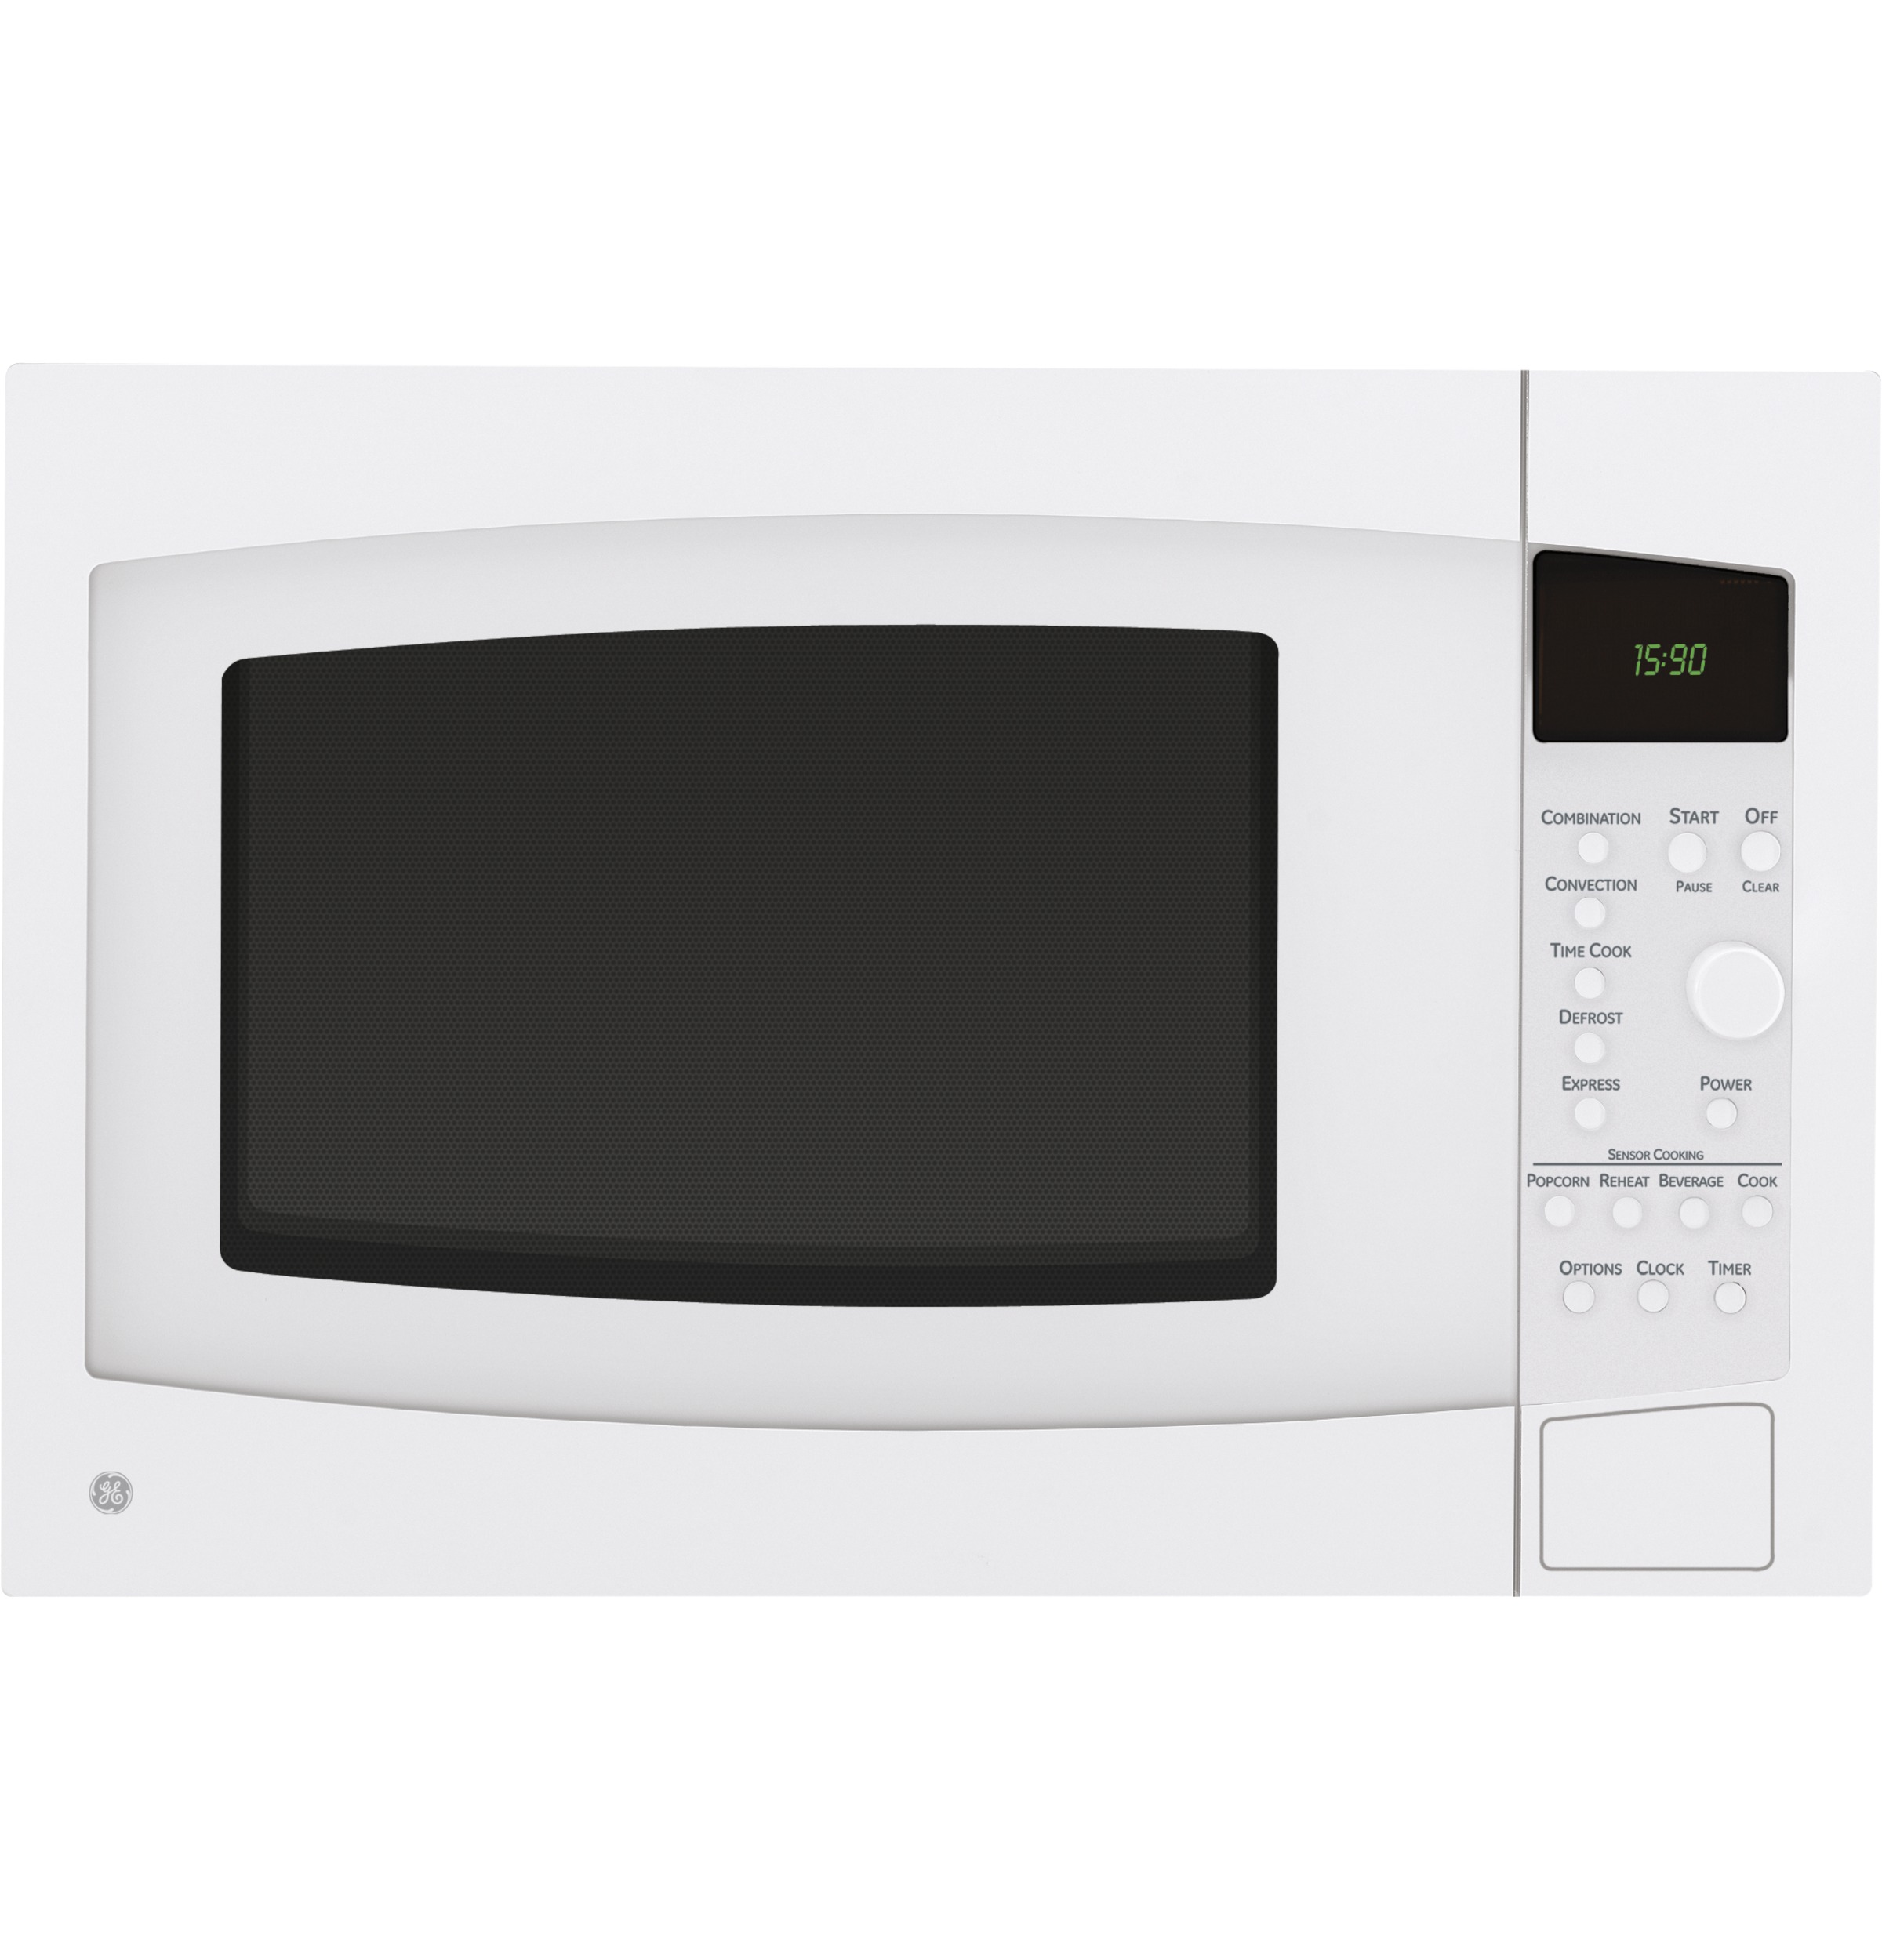 Countertop Convection Oven With Microwave : ... Ft. Countertop Convection/Microwave Oven PEB1590DMWW GE Appliances